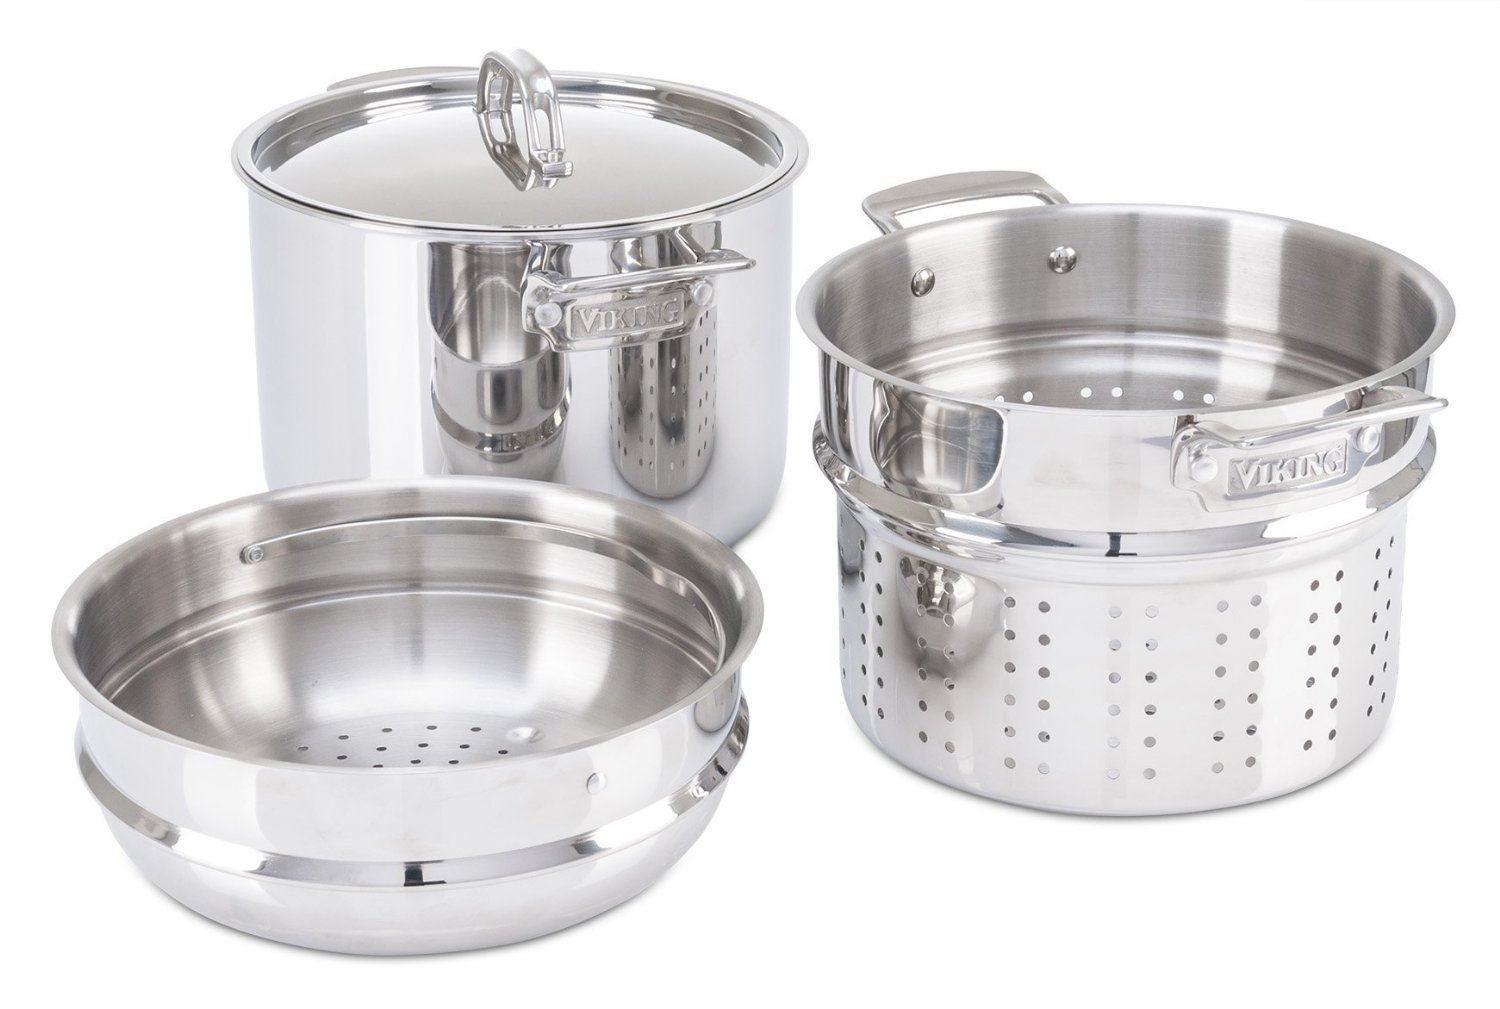 Viking 8 Qt 18 8 Stainless Steel Pasta Pot With Strainer